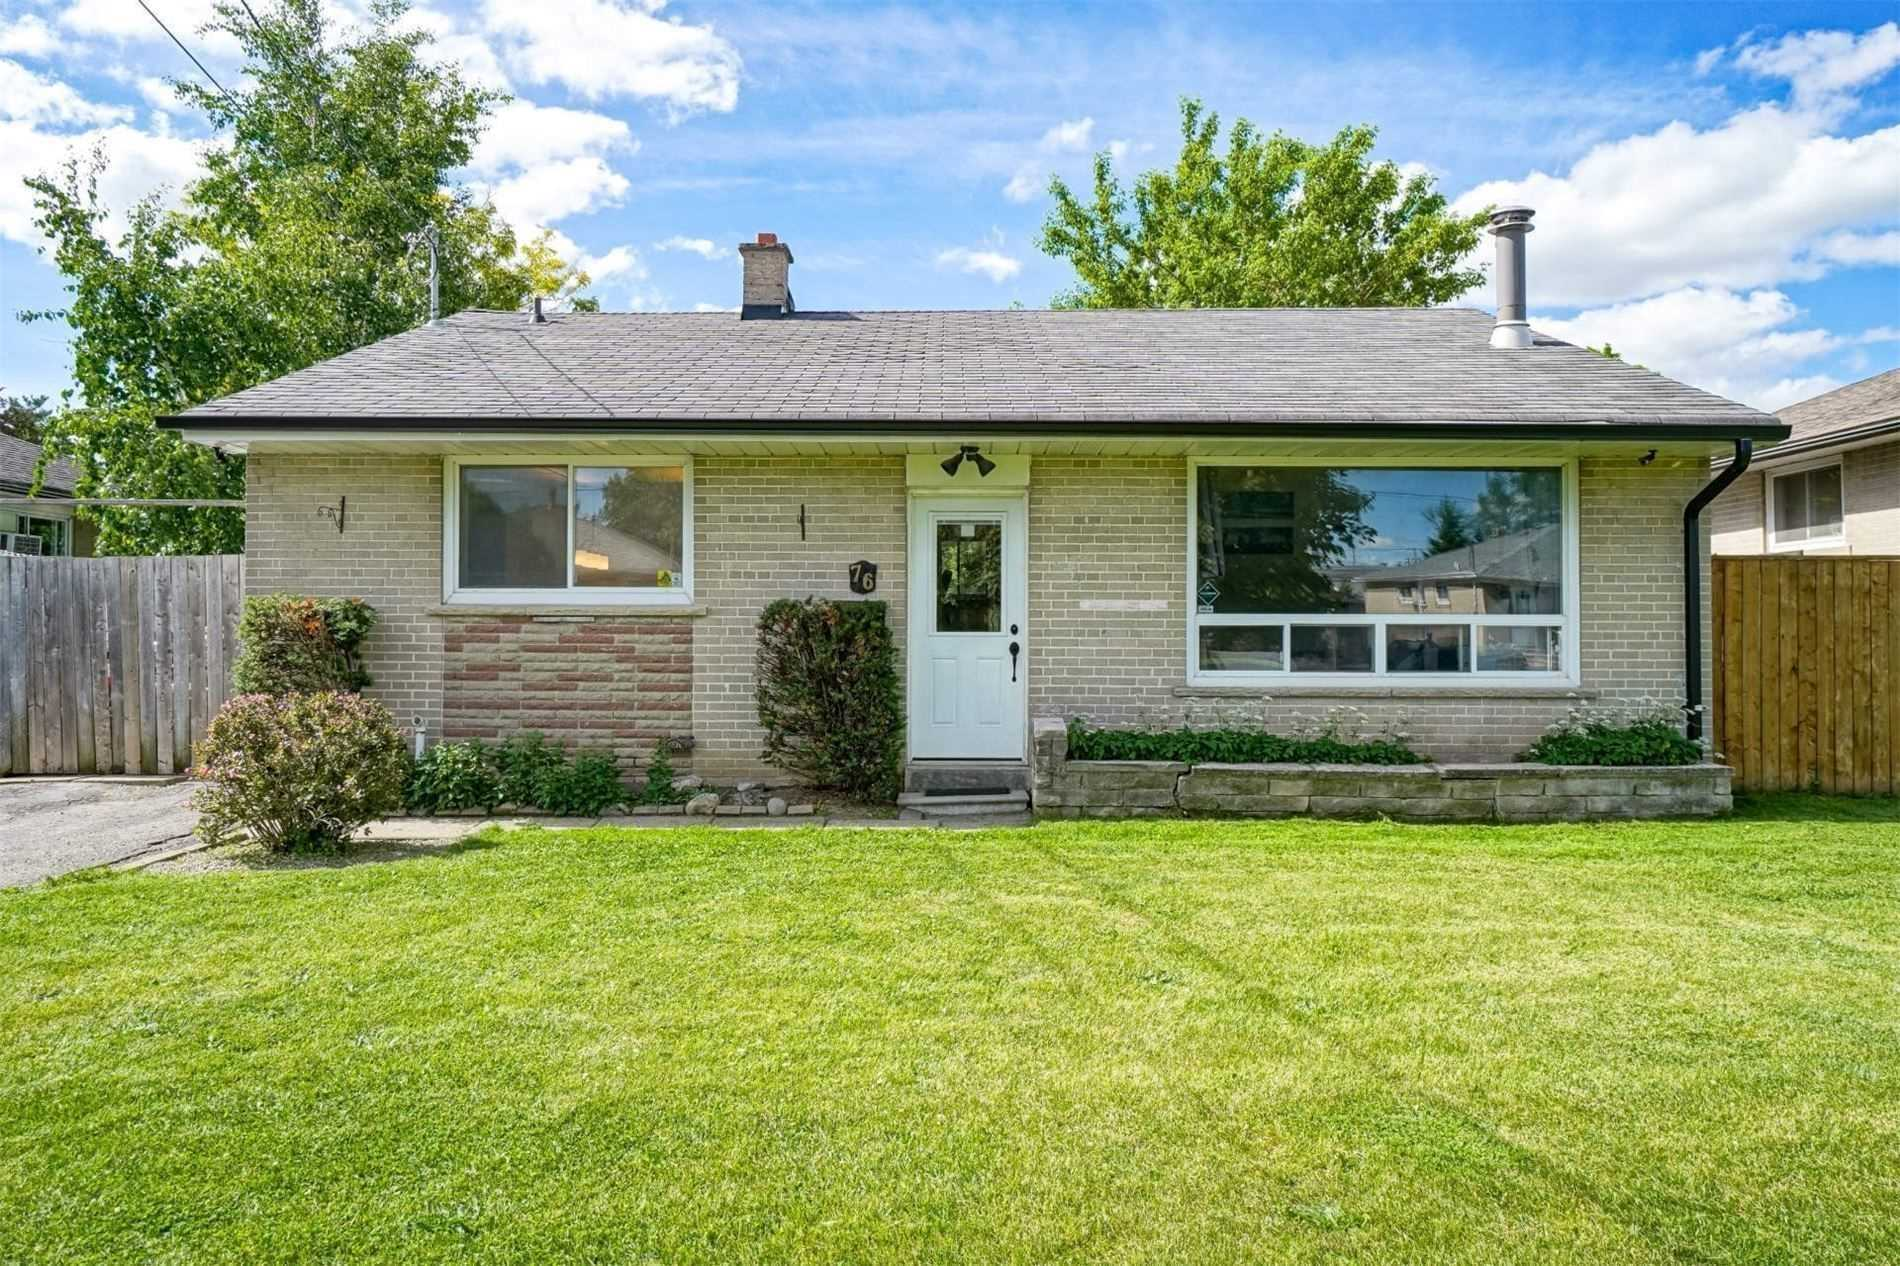 76 Raylawn Cres, Halton Hills, L7G4N1, 3 Bedrooms Bedrooms, ,1 BathroomBathrooms,Detached,For Sale,Raylawn,W4821398